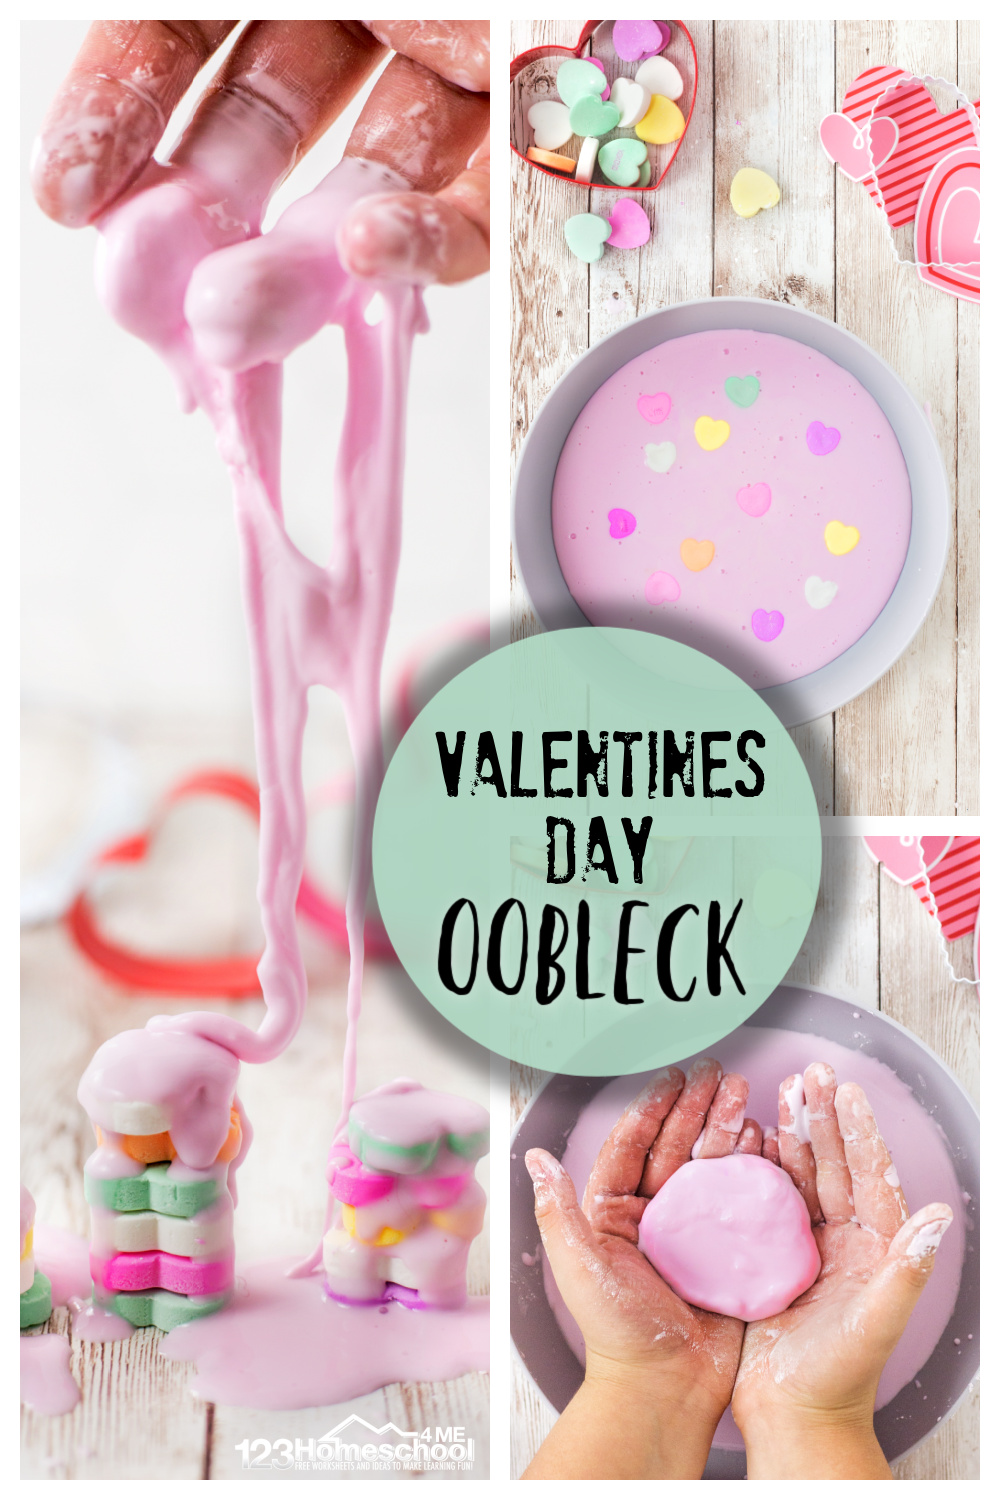 medium resolution of Valentines Day Oobleck - Science Play Activity for Kids